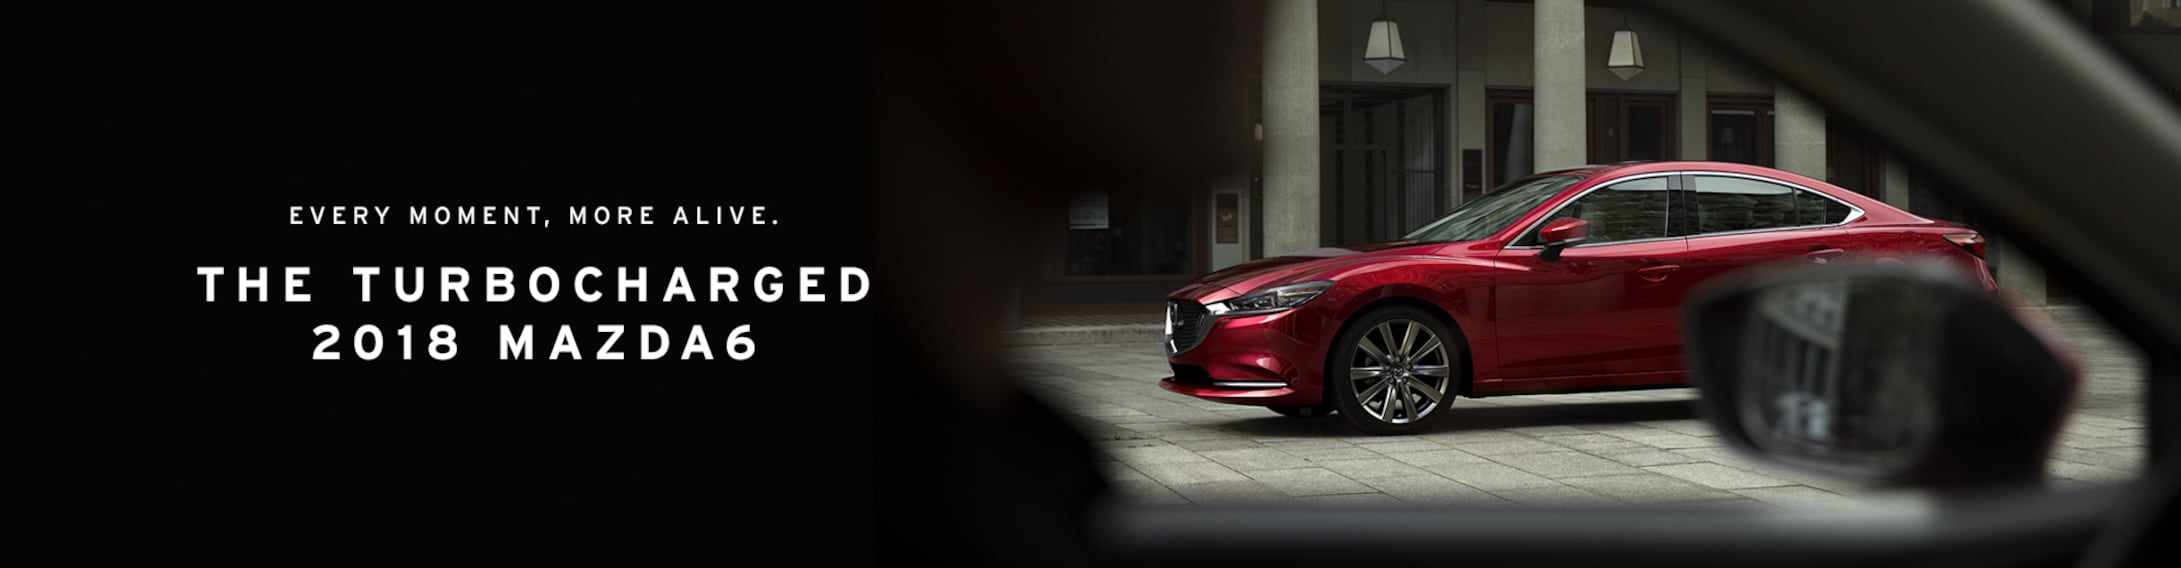 Northtowne Mazda | New Mazda dealership in Kansas City, MO 64118